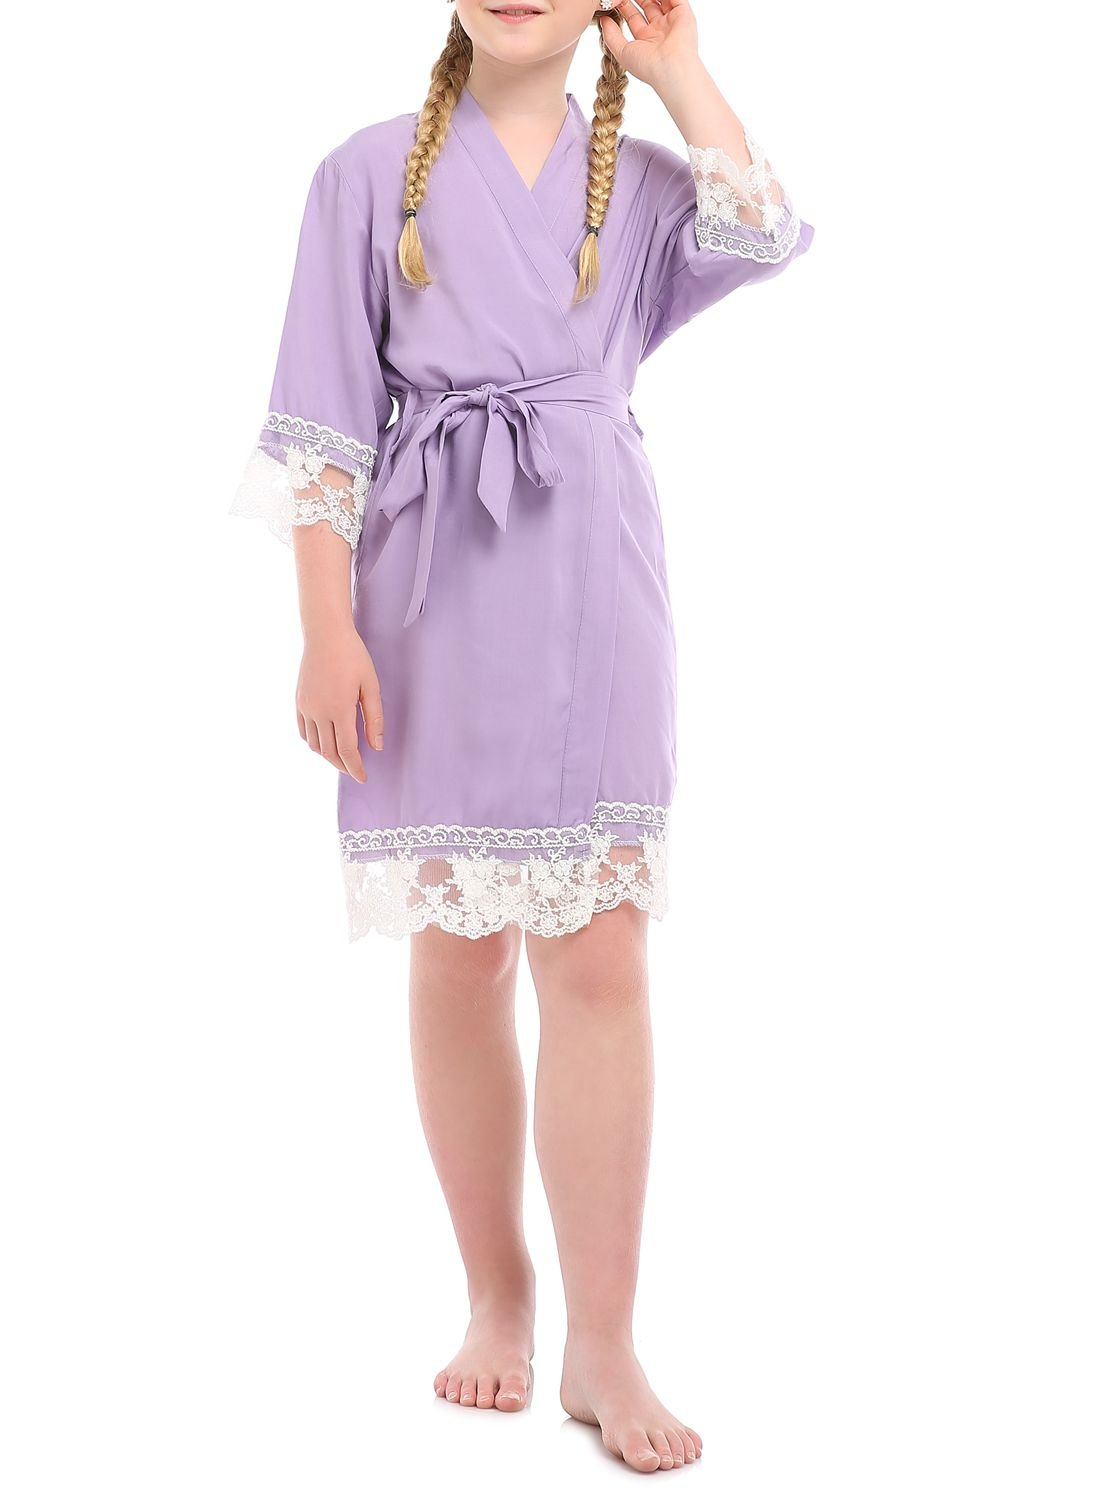 missfashion Girl's Junior Bridesmaid Rayon Cotton Lace Robe for Wedding Gift(12,Light Purple)